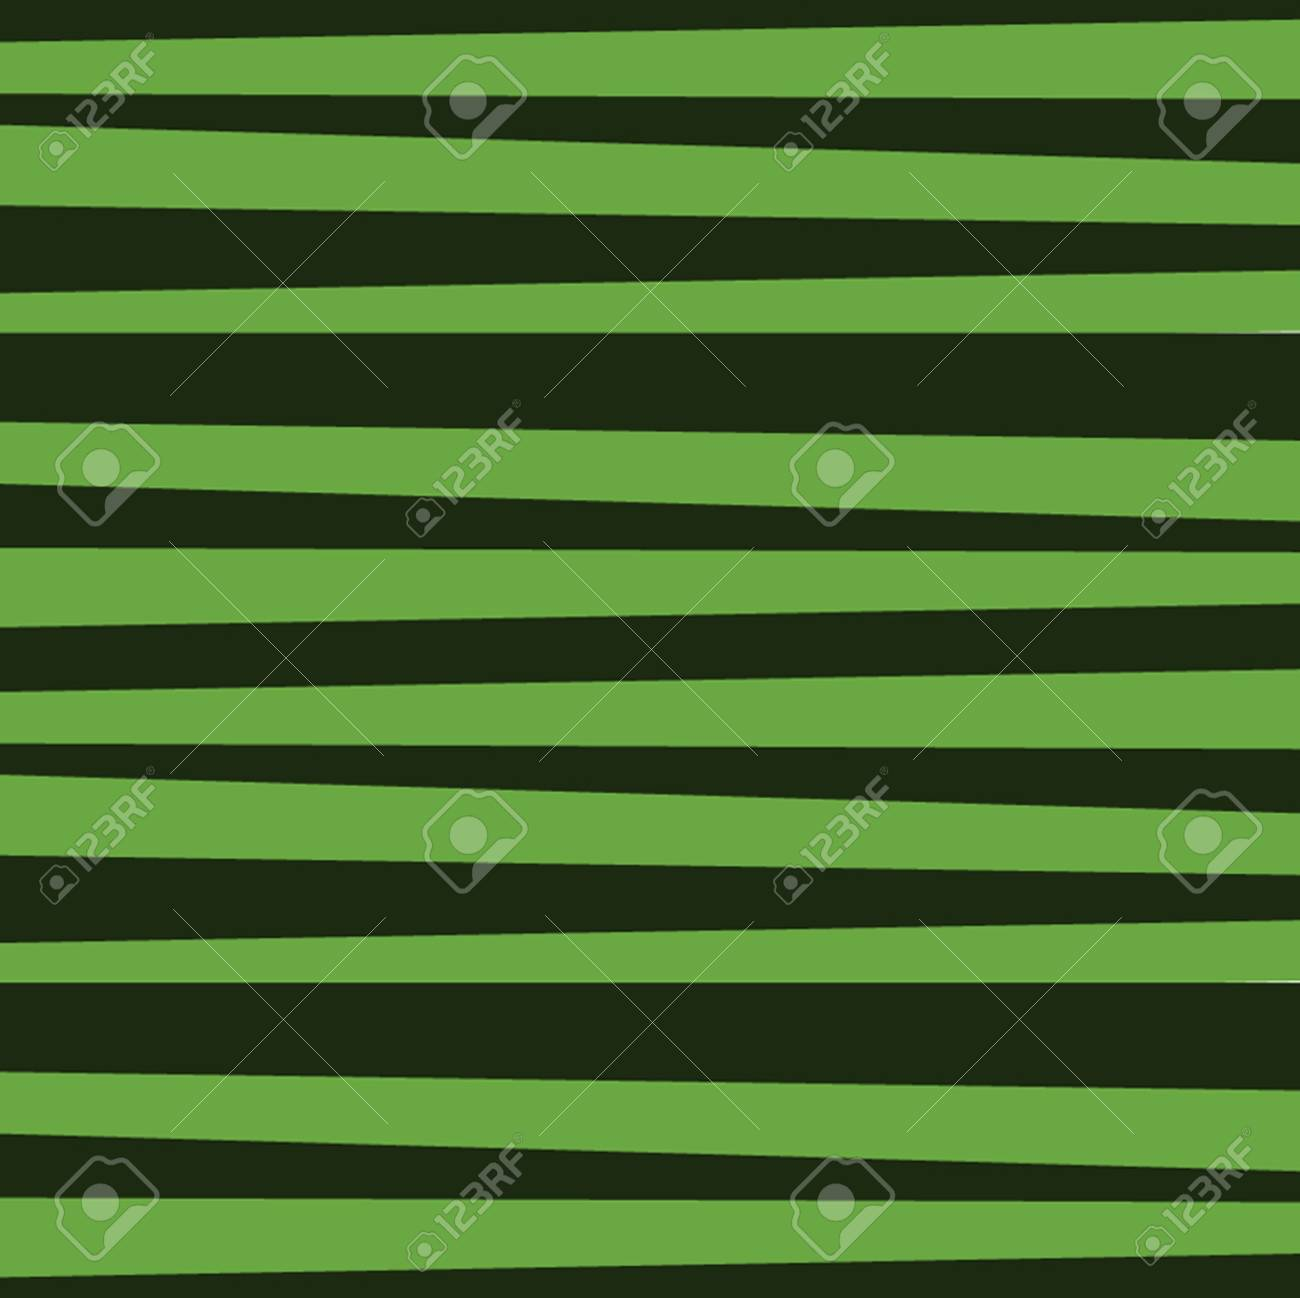 Abstract Vector Pattern With Horizontal Dark Green Stripes